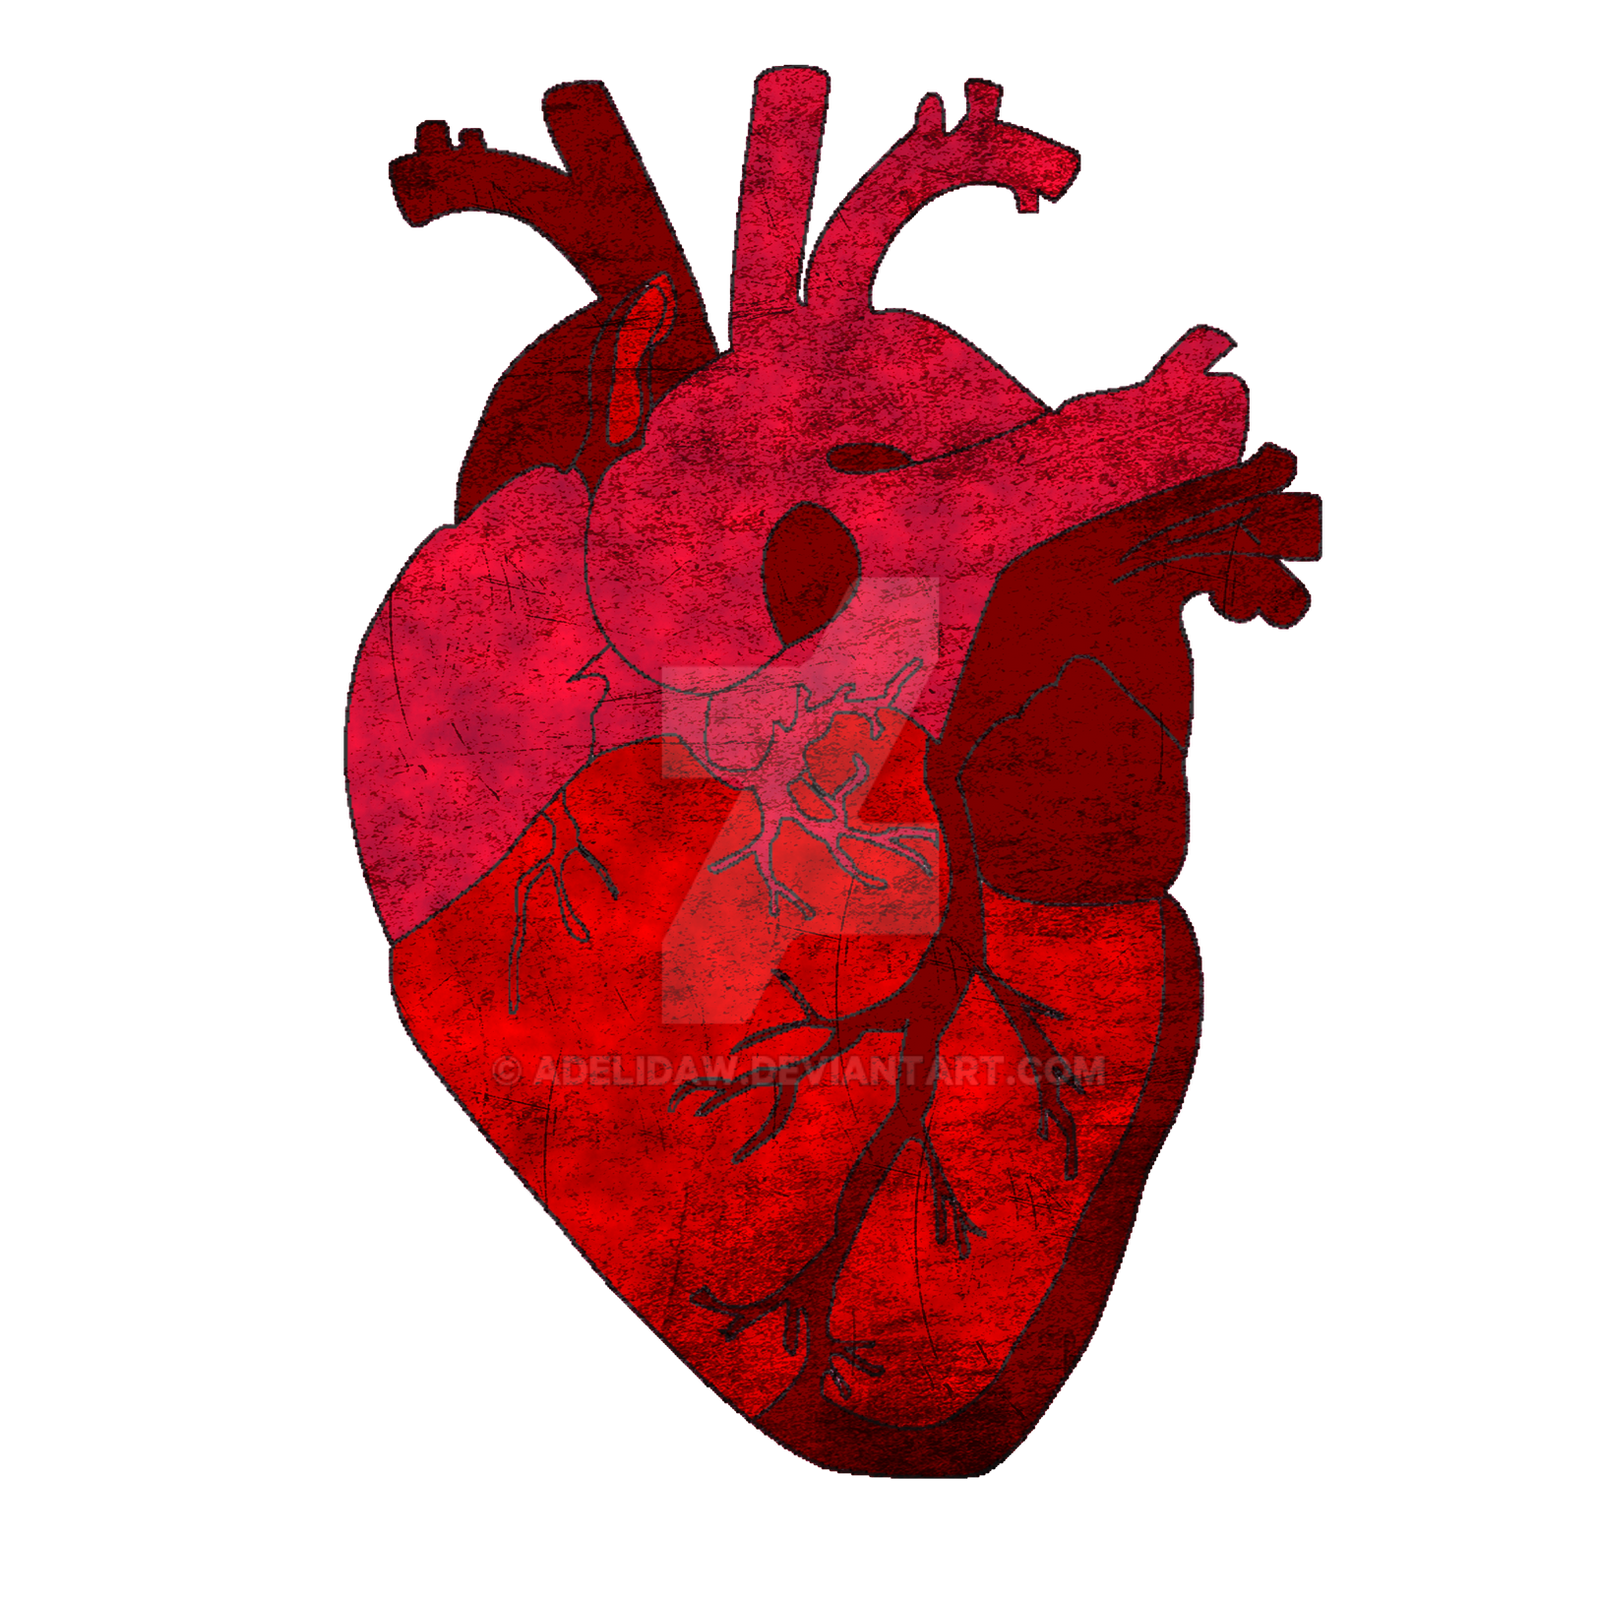 human heart The heart is a mostly hollow, muscular organ composed of cardiac muscles and connective tissue that acts as a pump to distribute blood throughout the body's tissues.